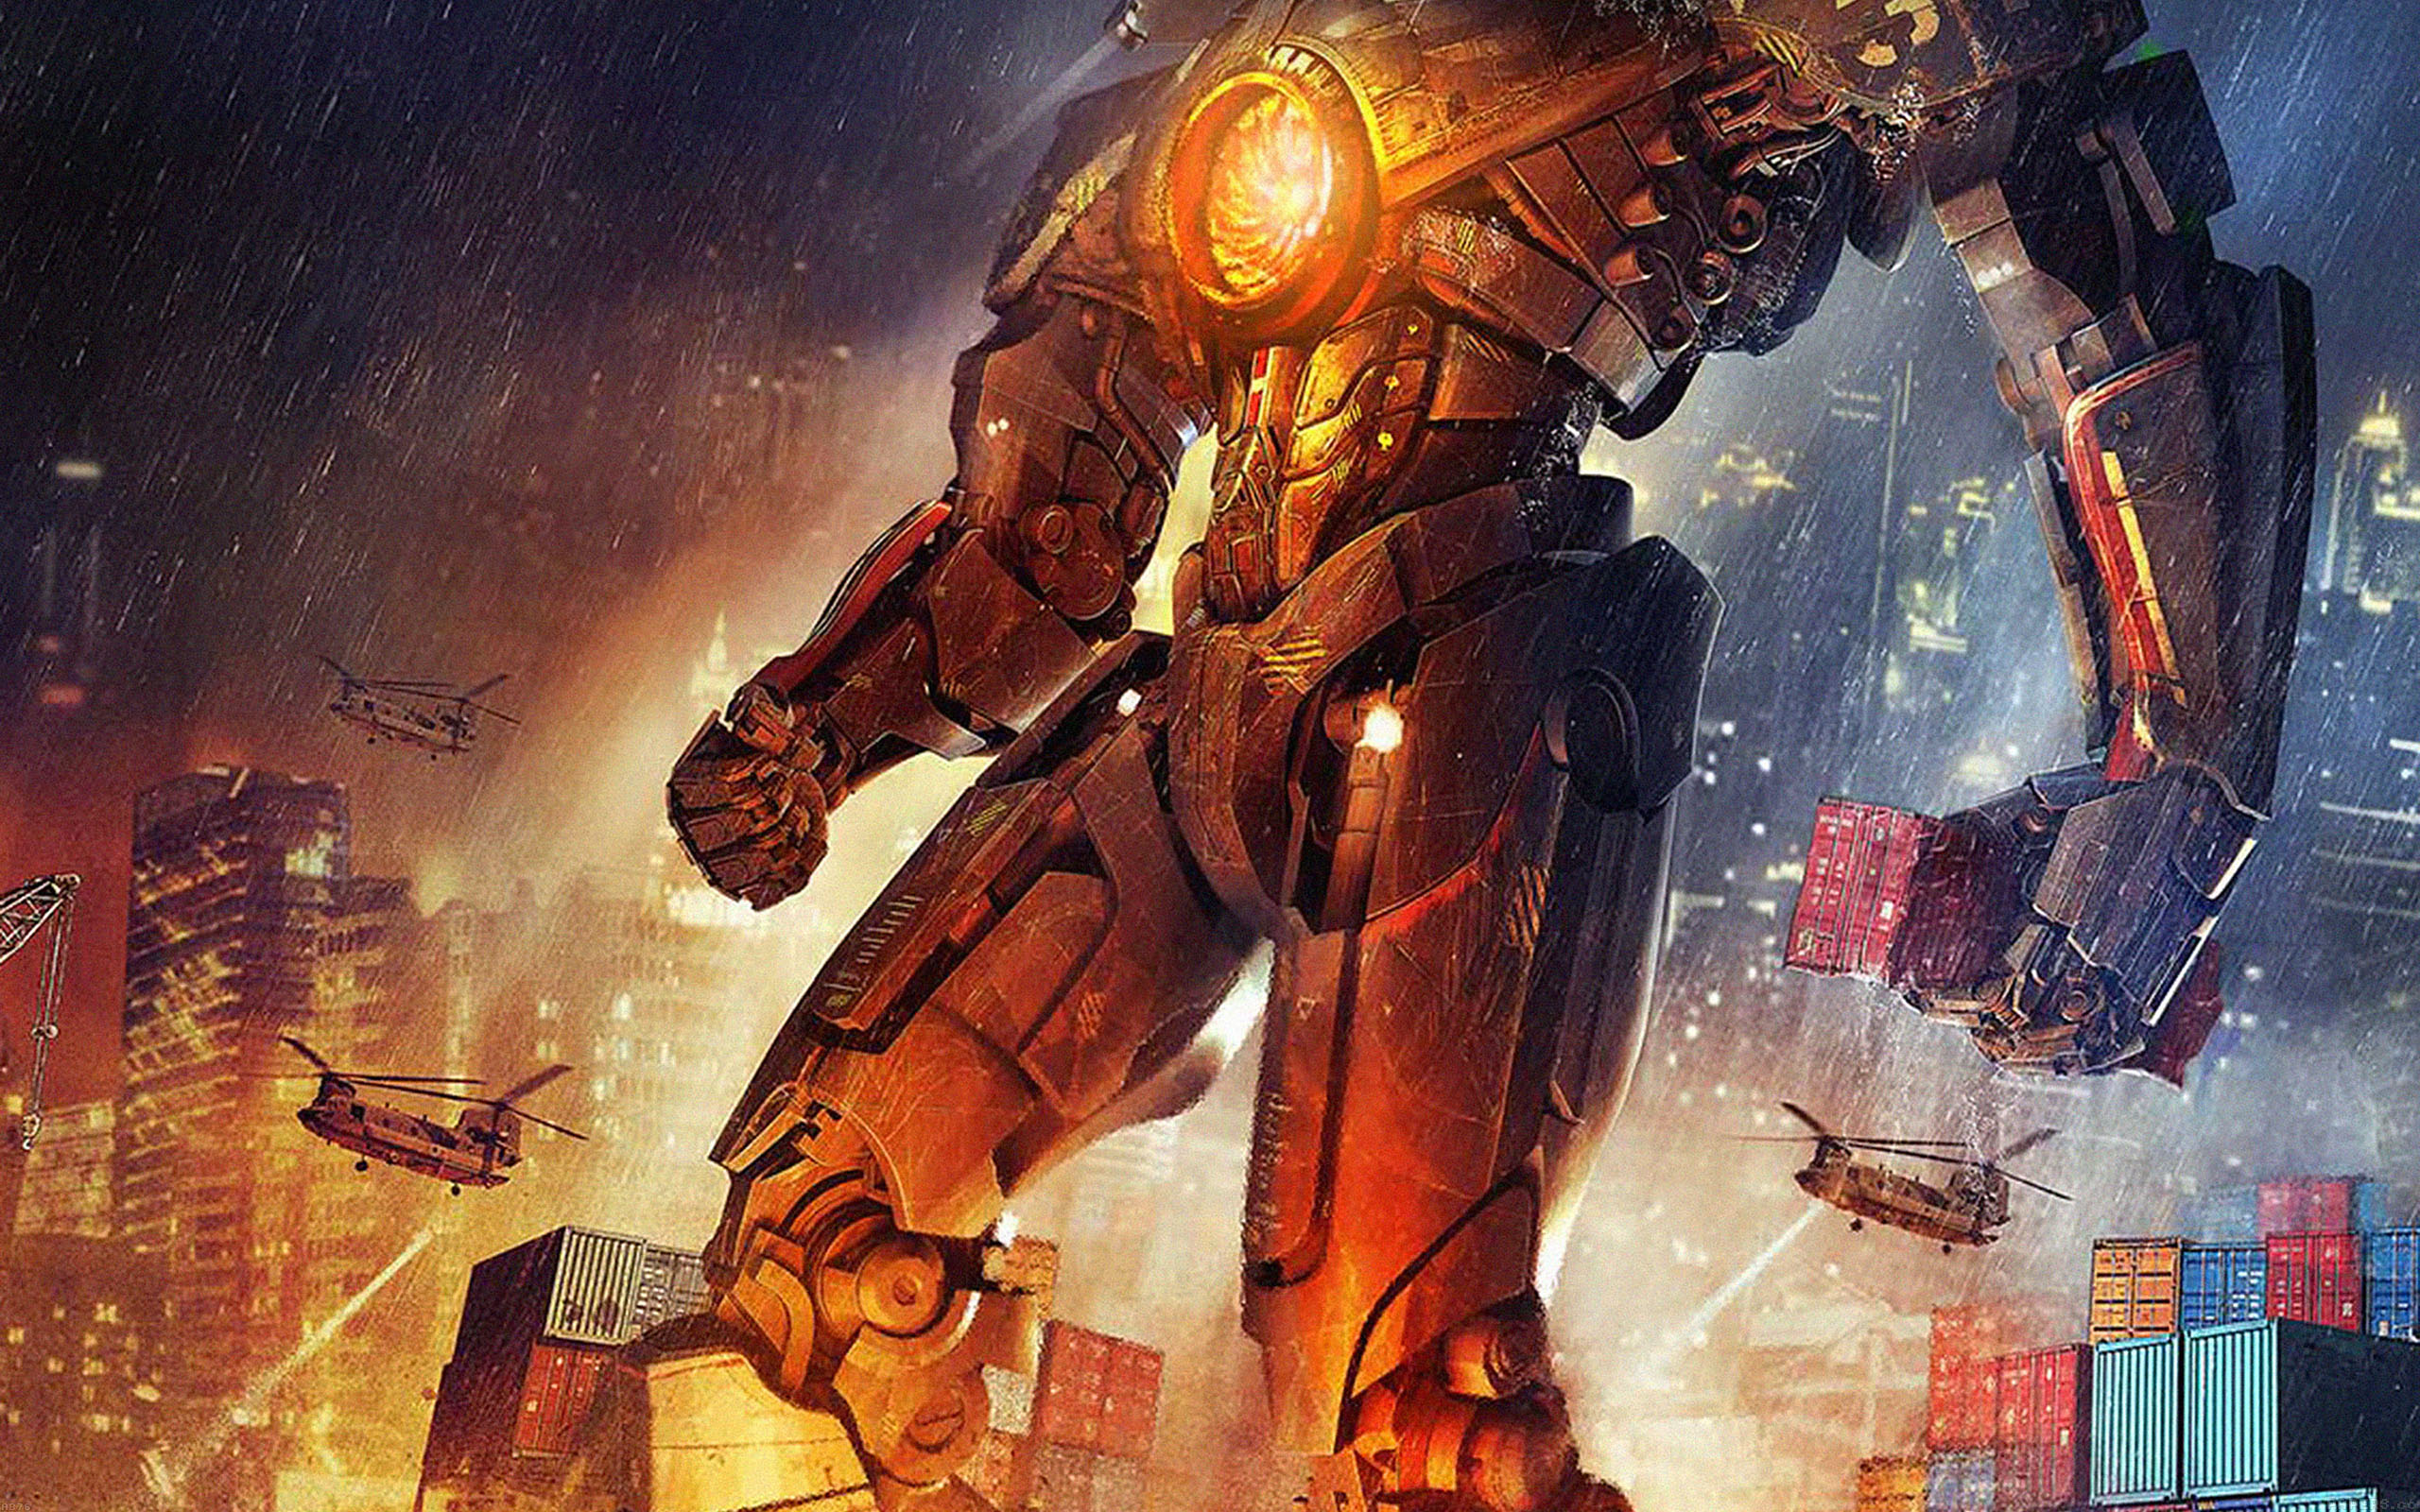 Droid X Girl Wallpaper Ab76 Wallpaper Pacific Rim No1 Papers Co